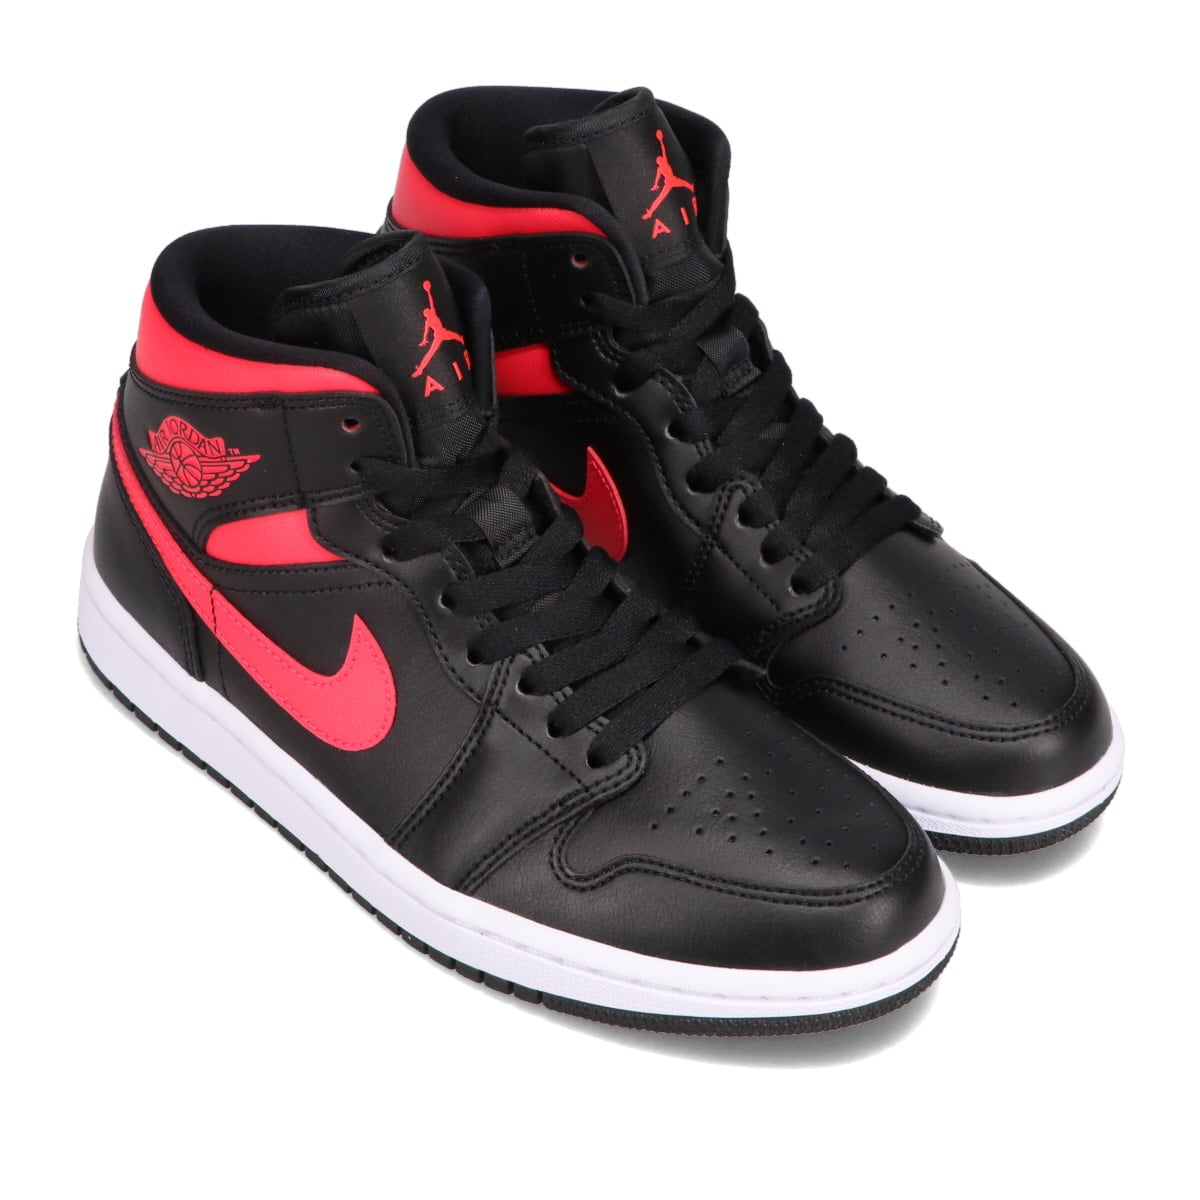 JORDAN BRAND WMNS AIR JORDAN 1 MID BLACK/SIREN RED-WHITE 21SP-S_photo_large